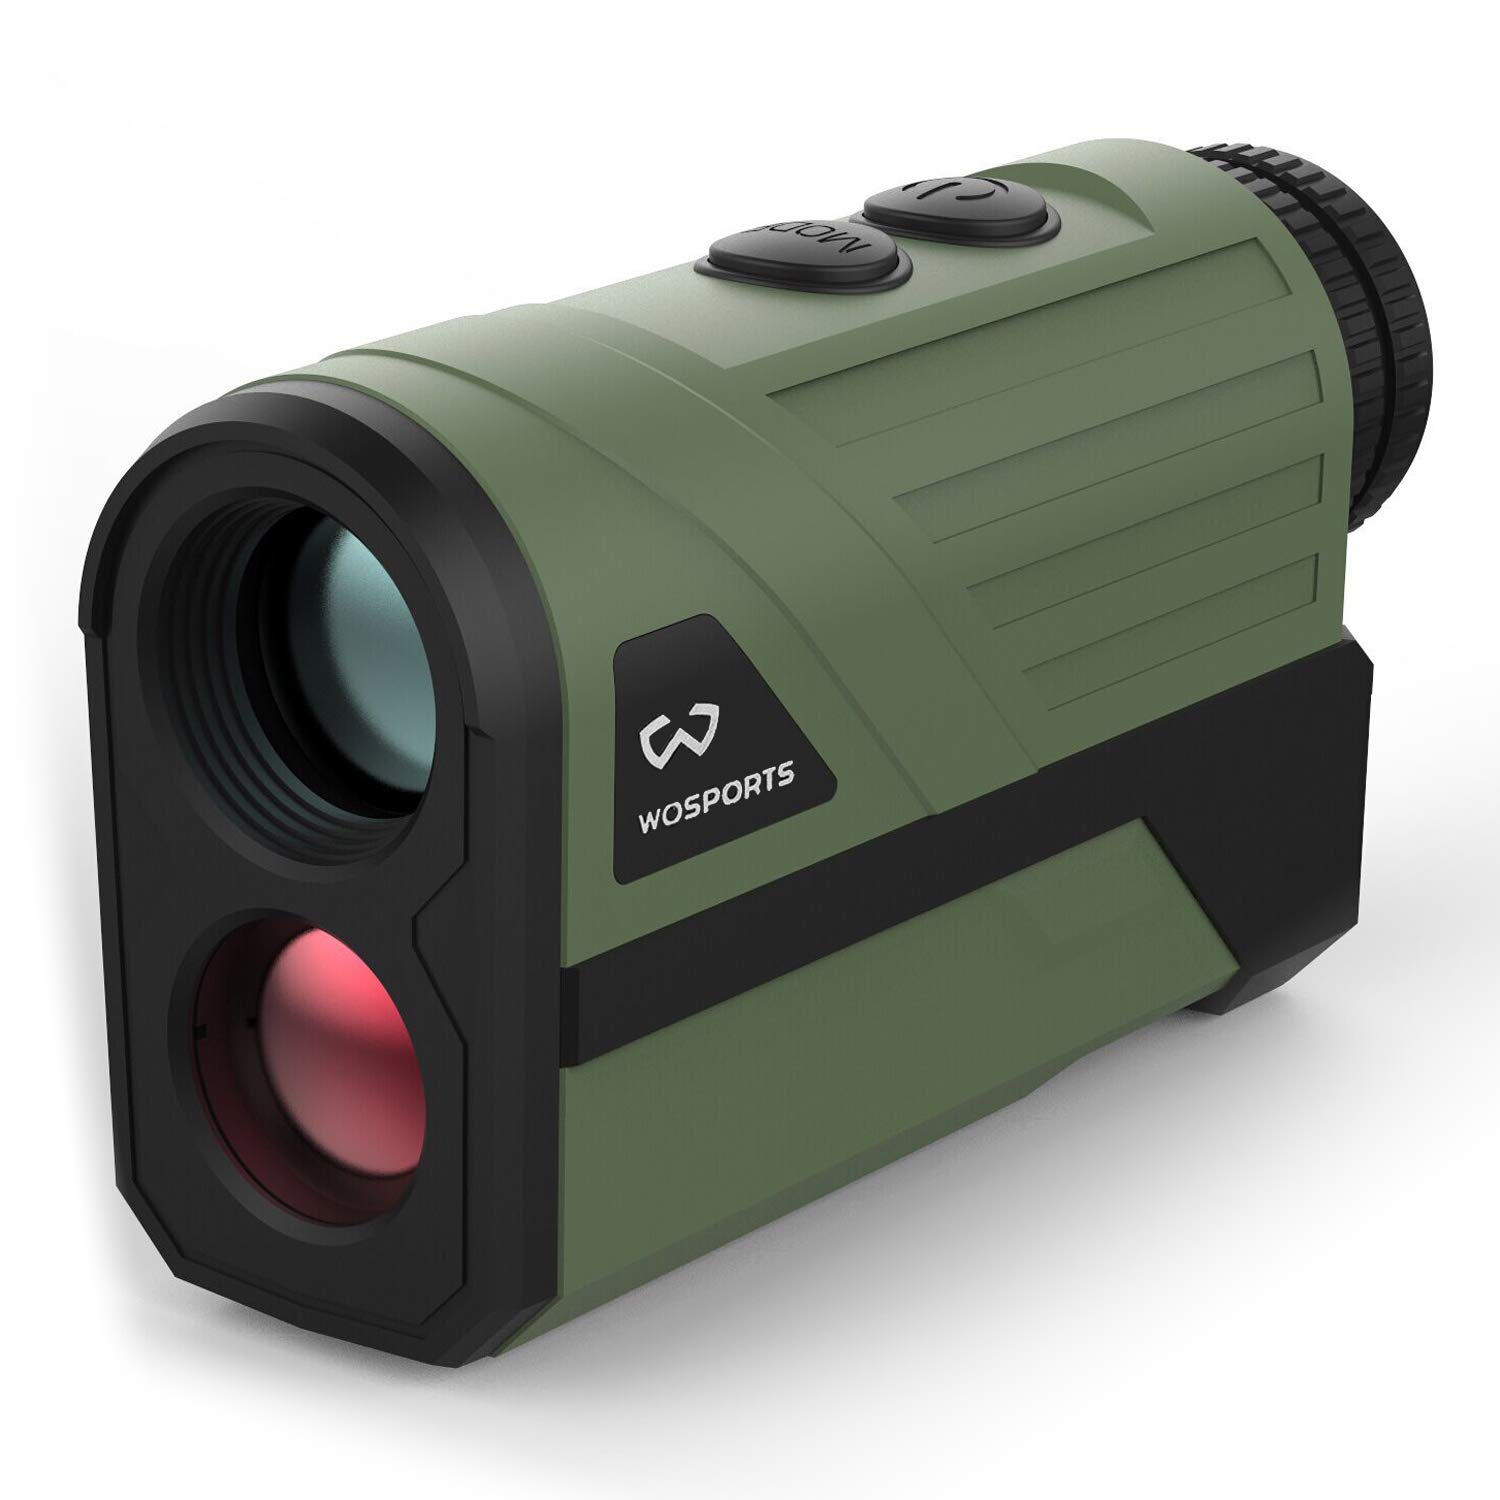 Wosports Hunting Rangefinder, Laser Speed Measure Range Finder, 6X Magnification/High Accuracy/Long Horizontal Distance for Hunting Speed, Scan and Normal Measurements by WOSPORTS